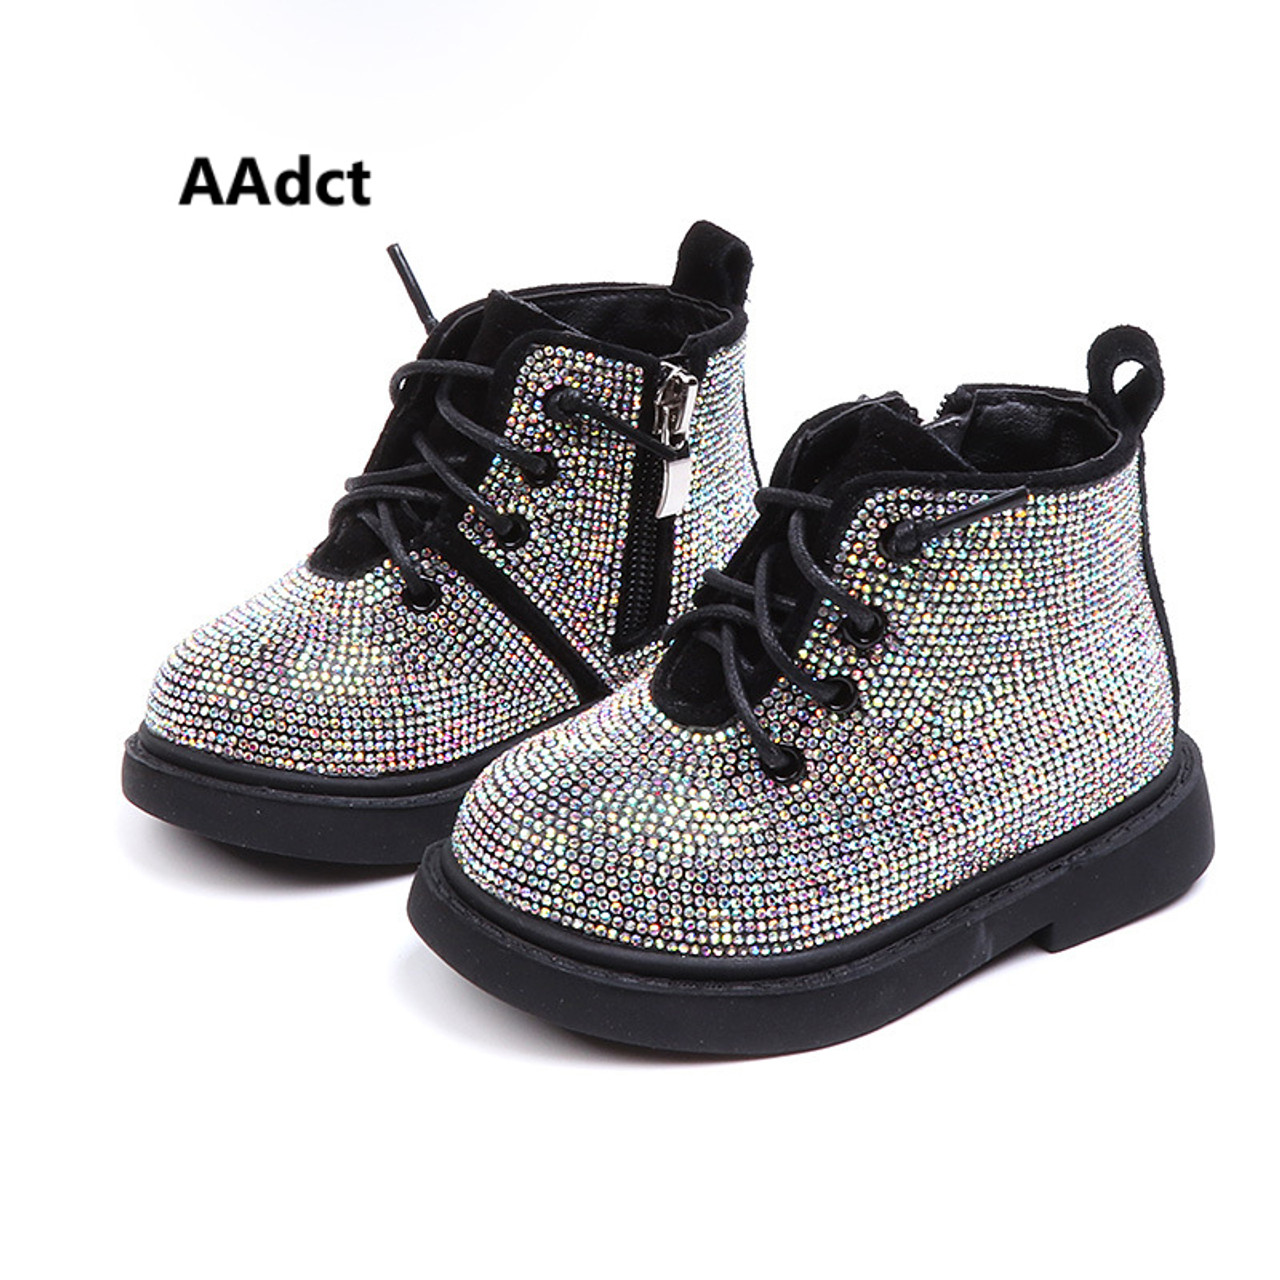 232960c4f63d AAdct Cotton warm crystal little girls boots Non-slip shinning baby boots  2018 Winter princess ...